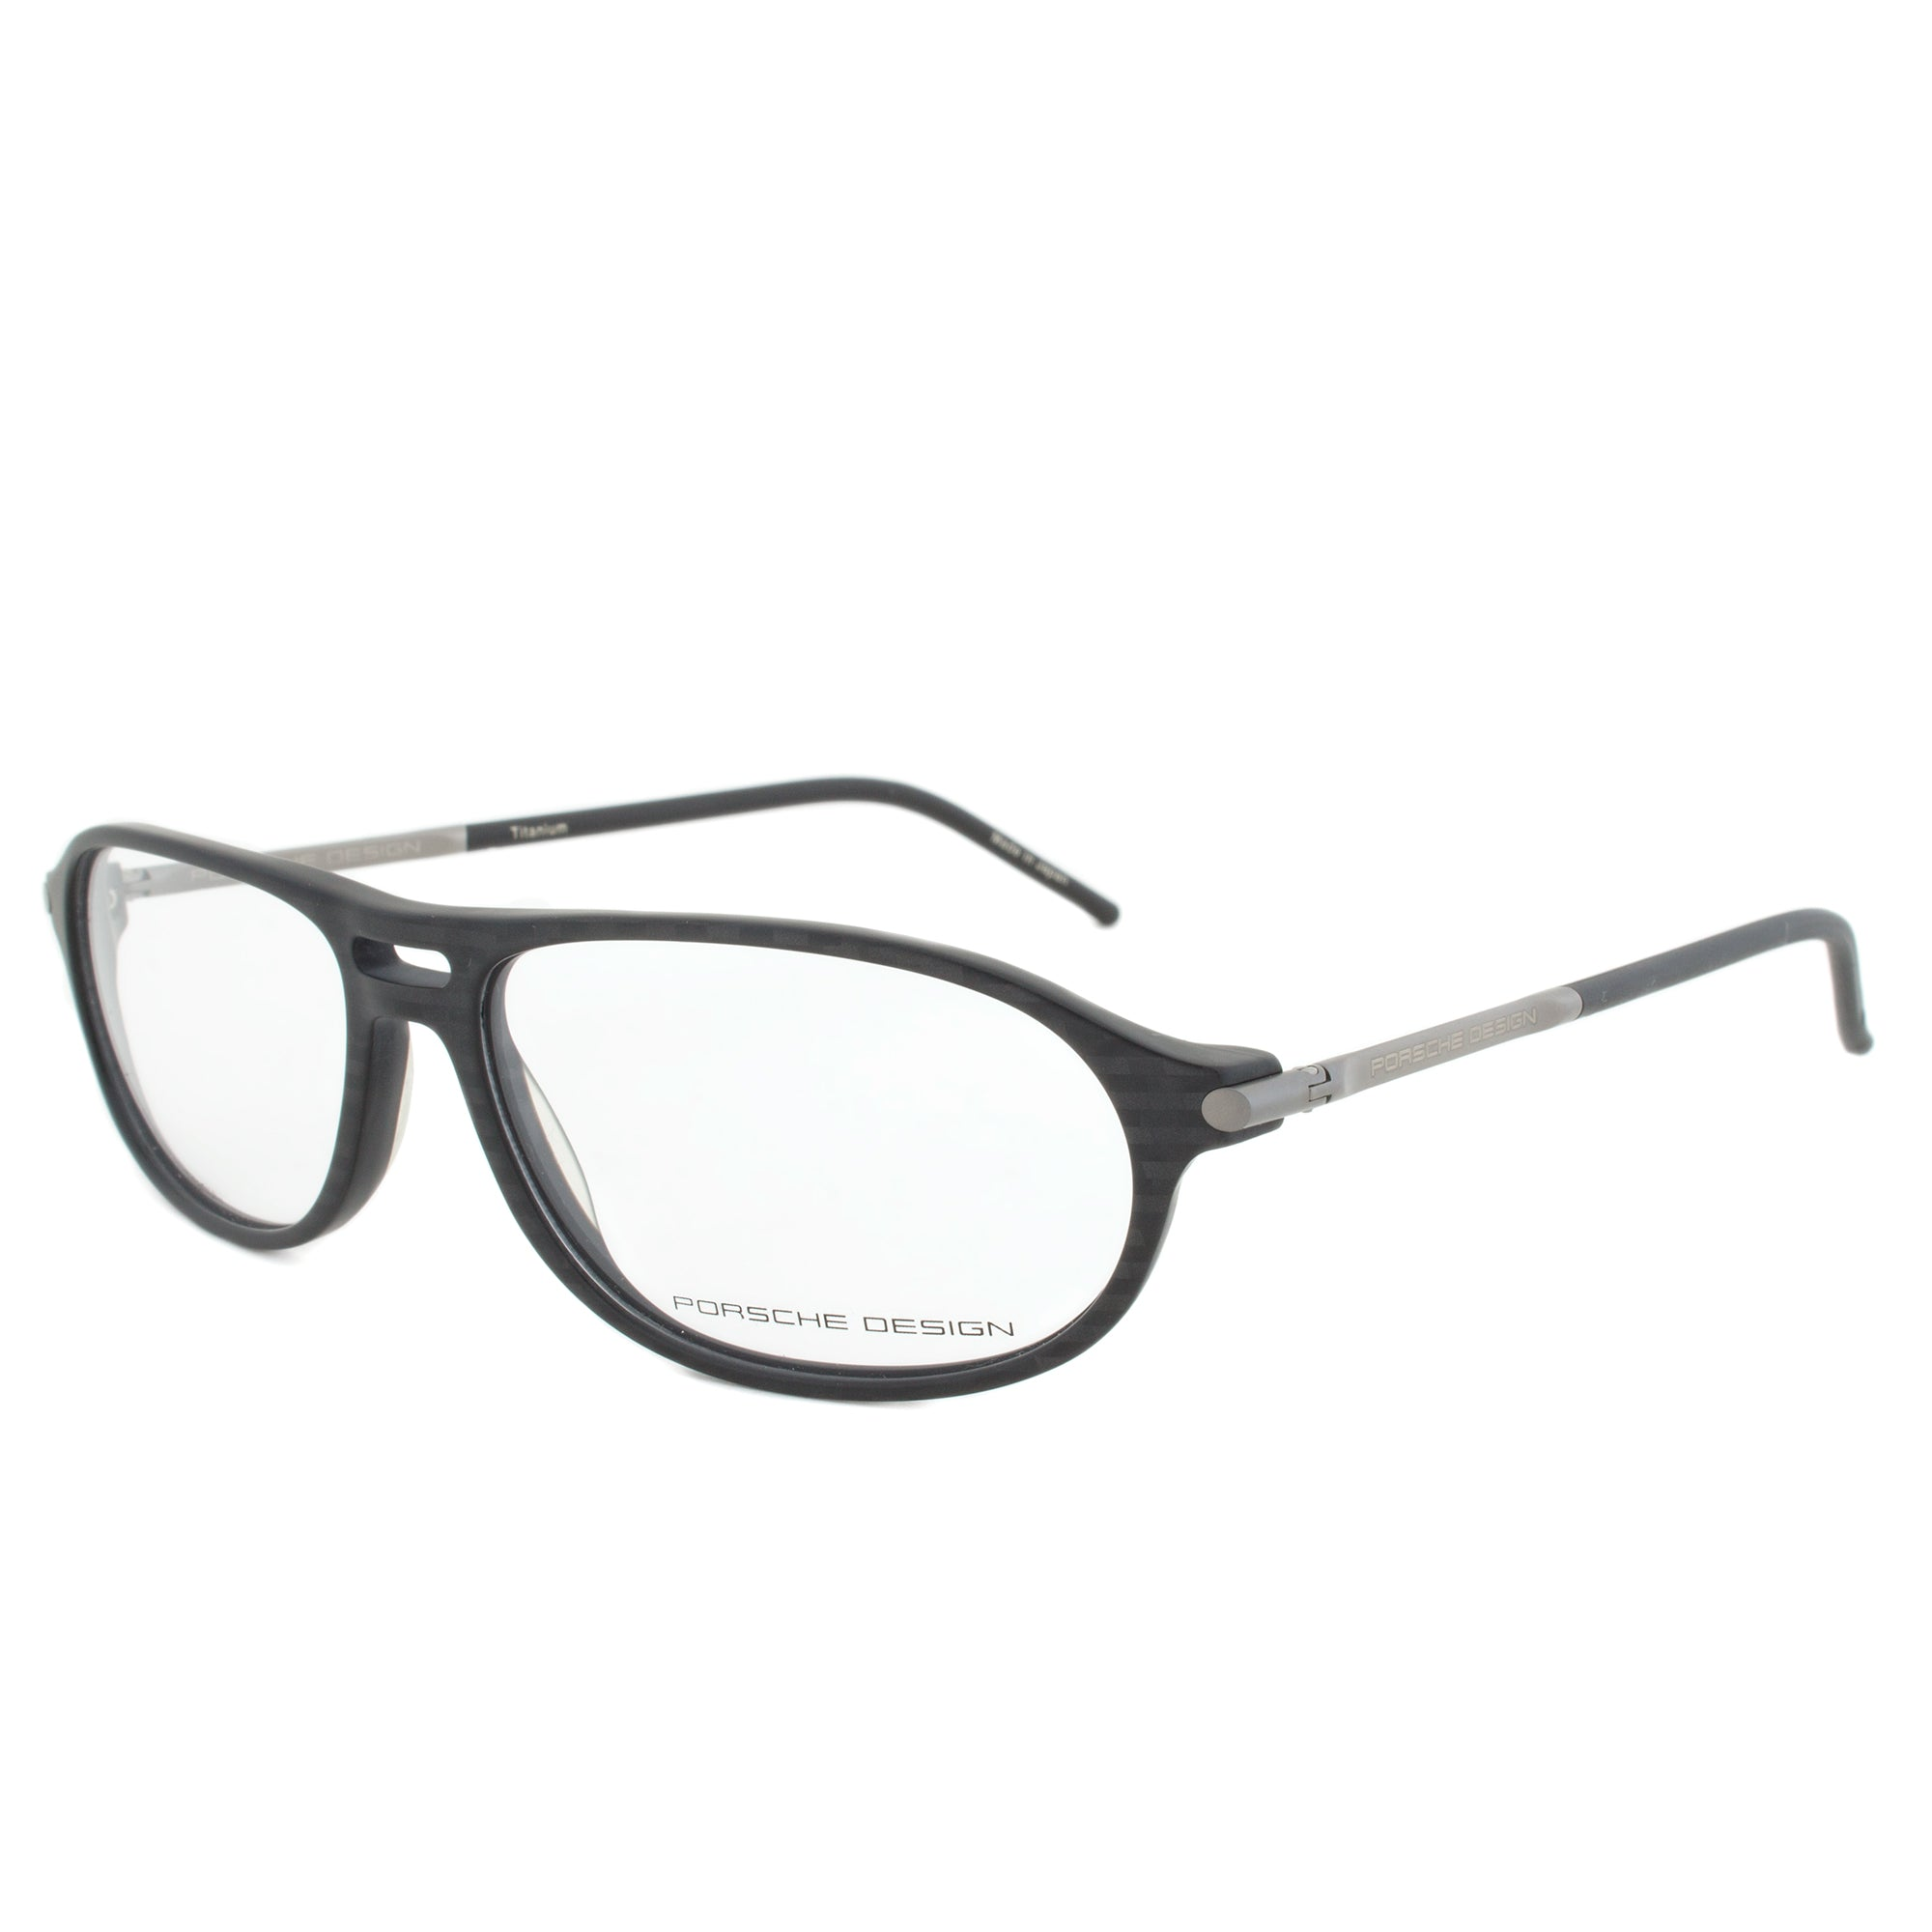 Porsche Design P8138 A Oval | Dark Grey| Eyeglass Frames